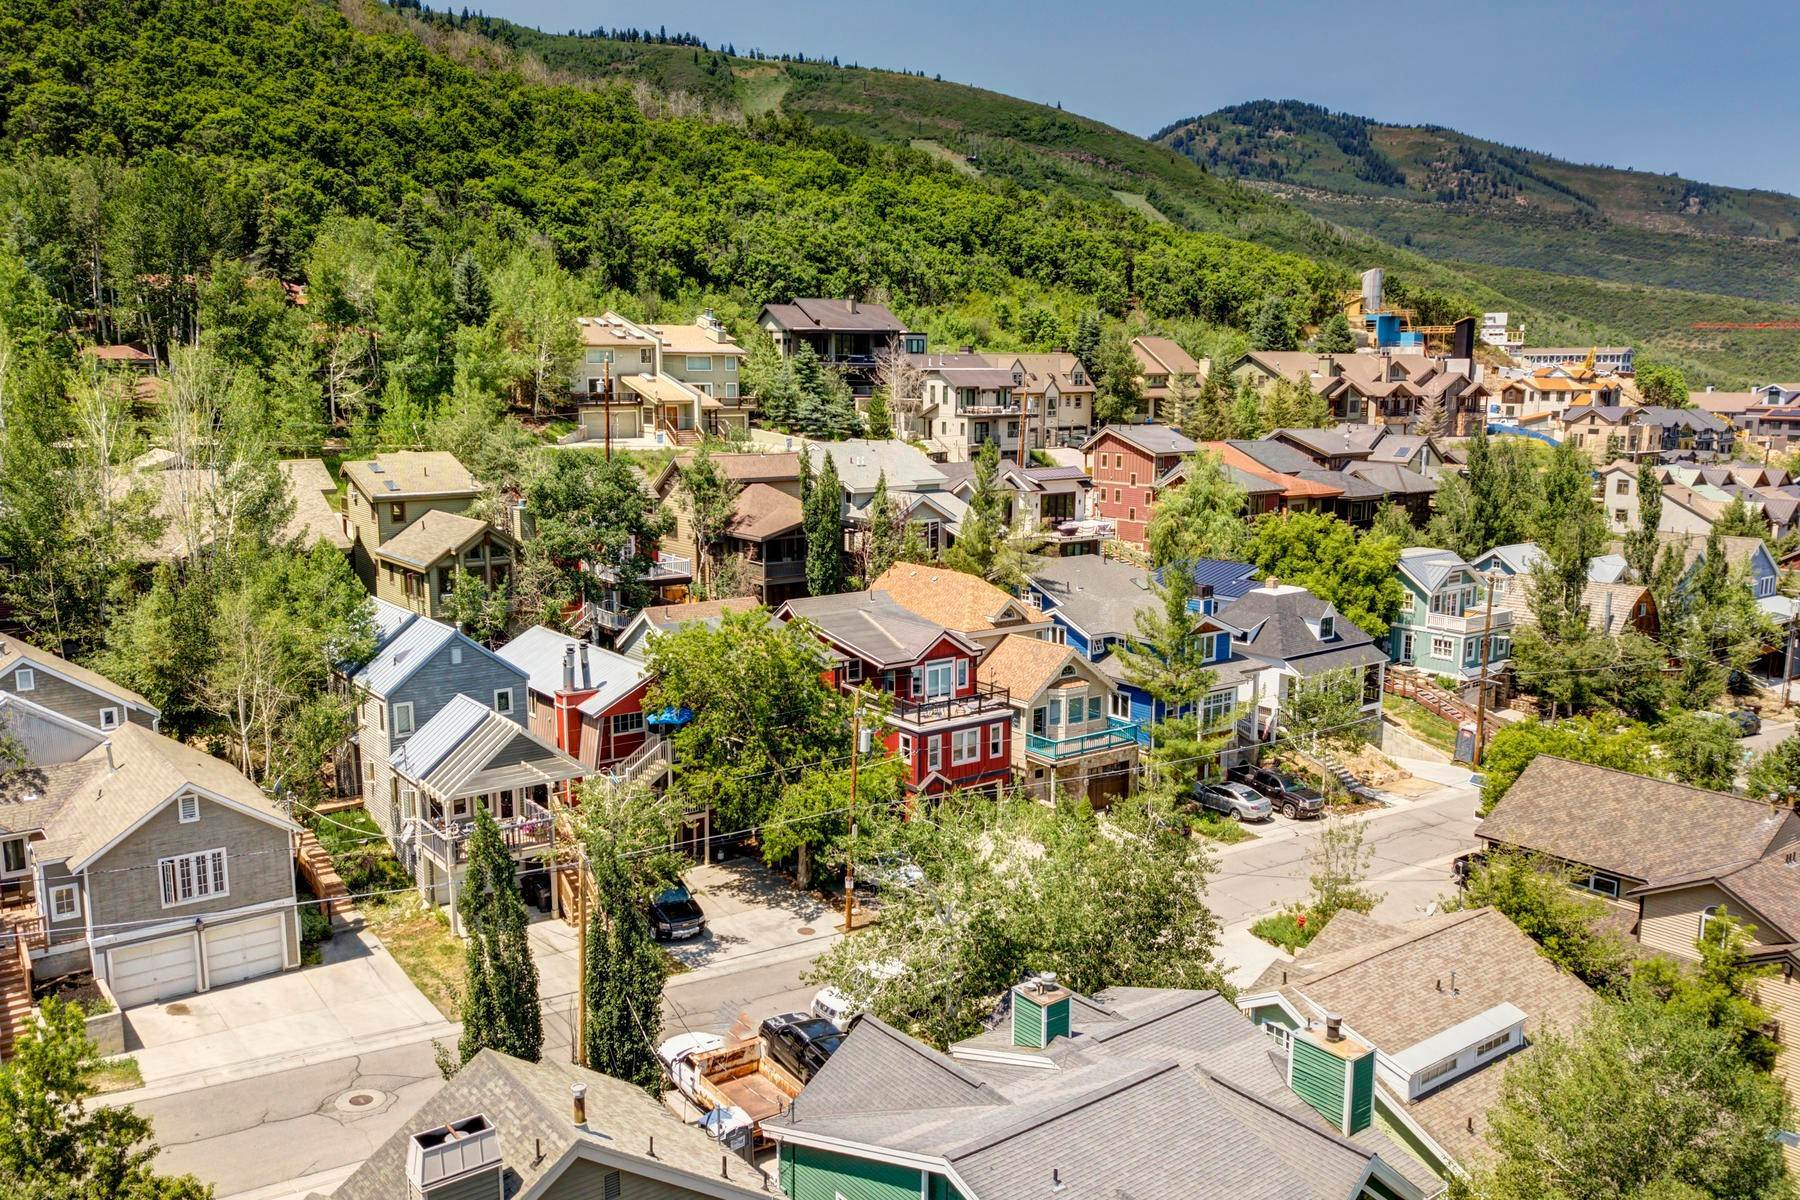 Property for Sale at Old Town Rental Property 1025 Empire Ave Park City, Utah 84060 United States